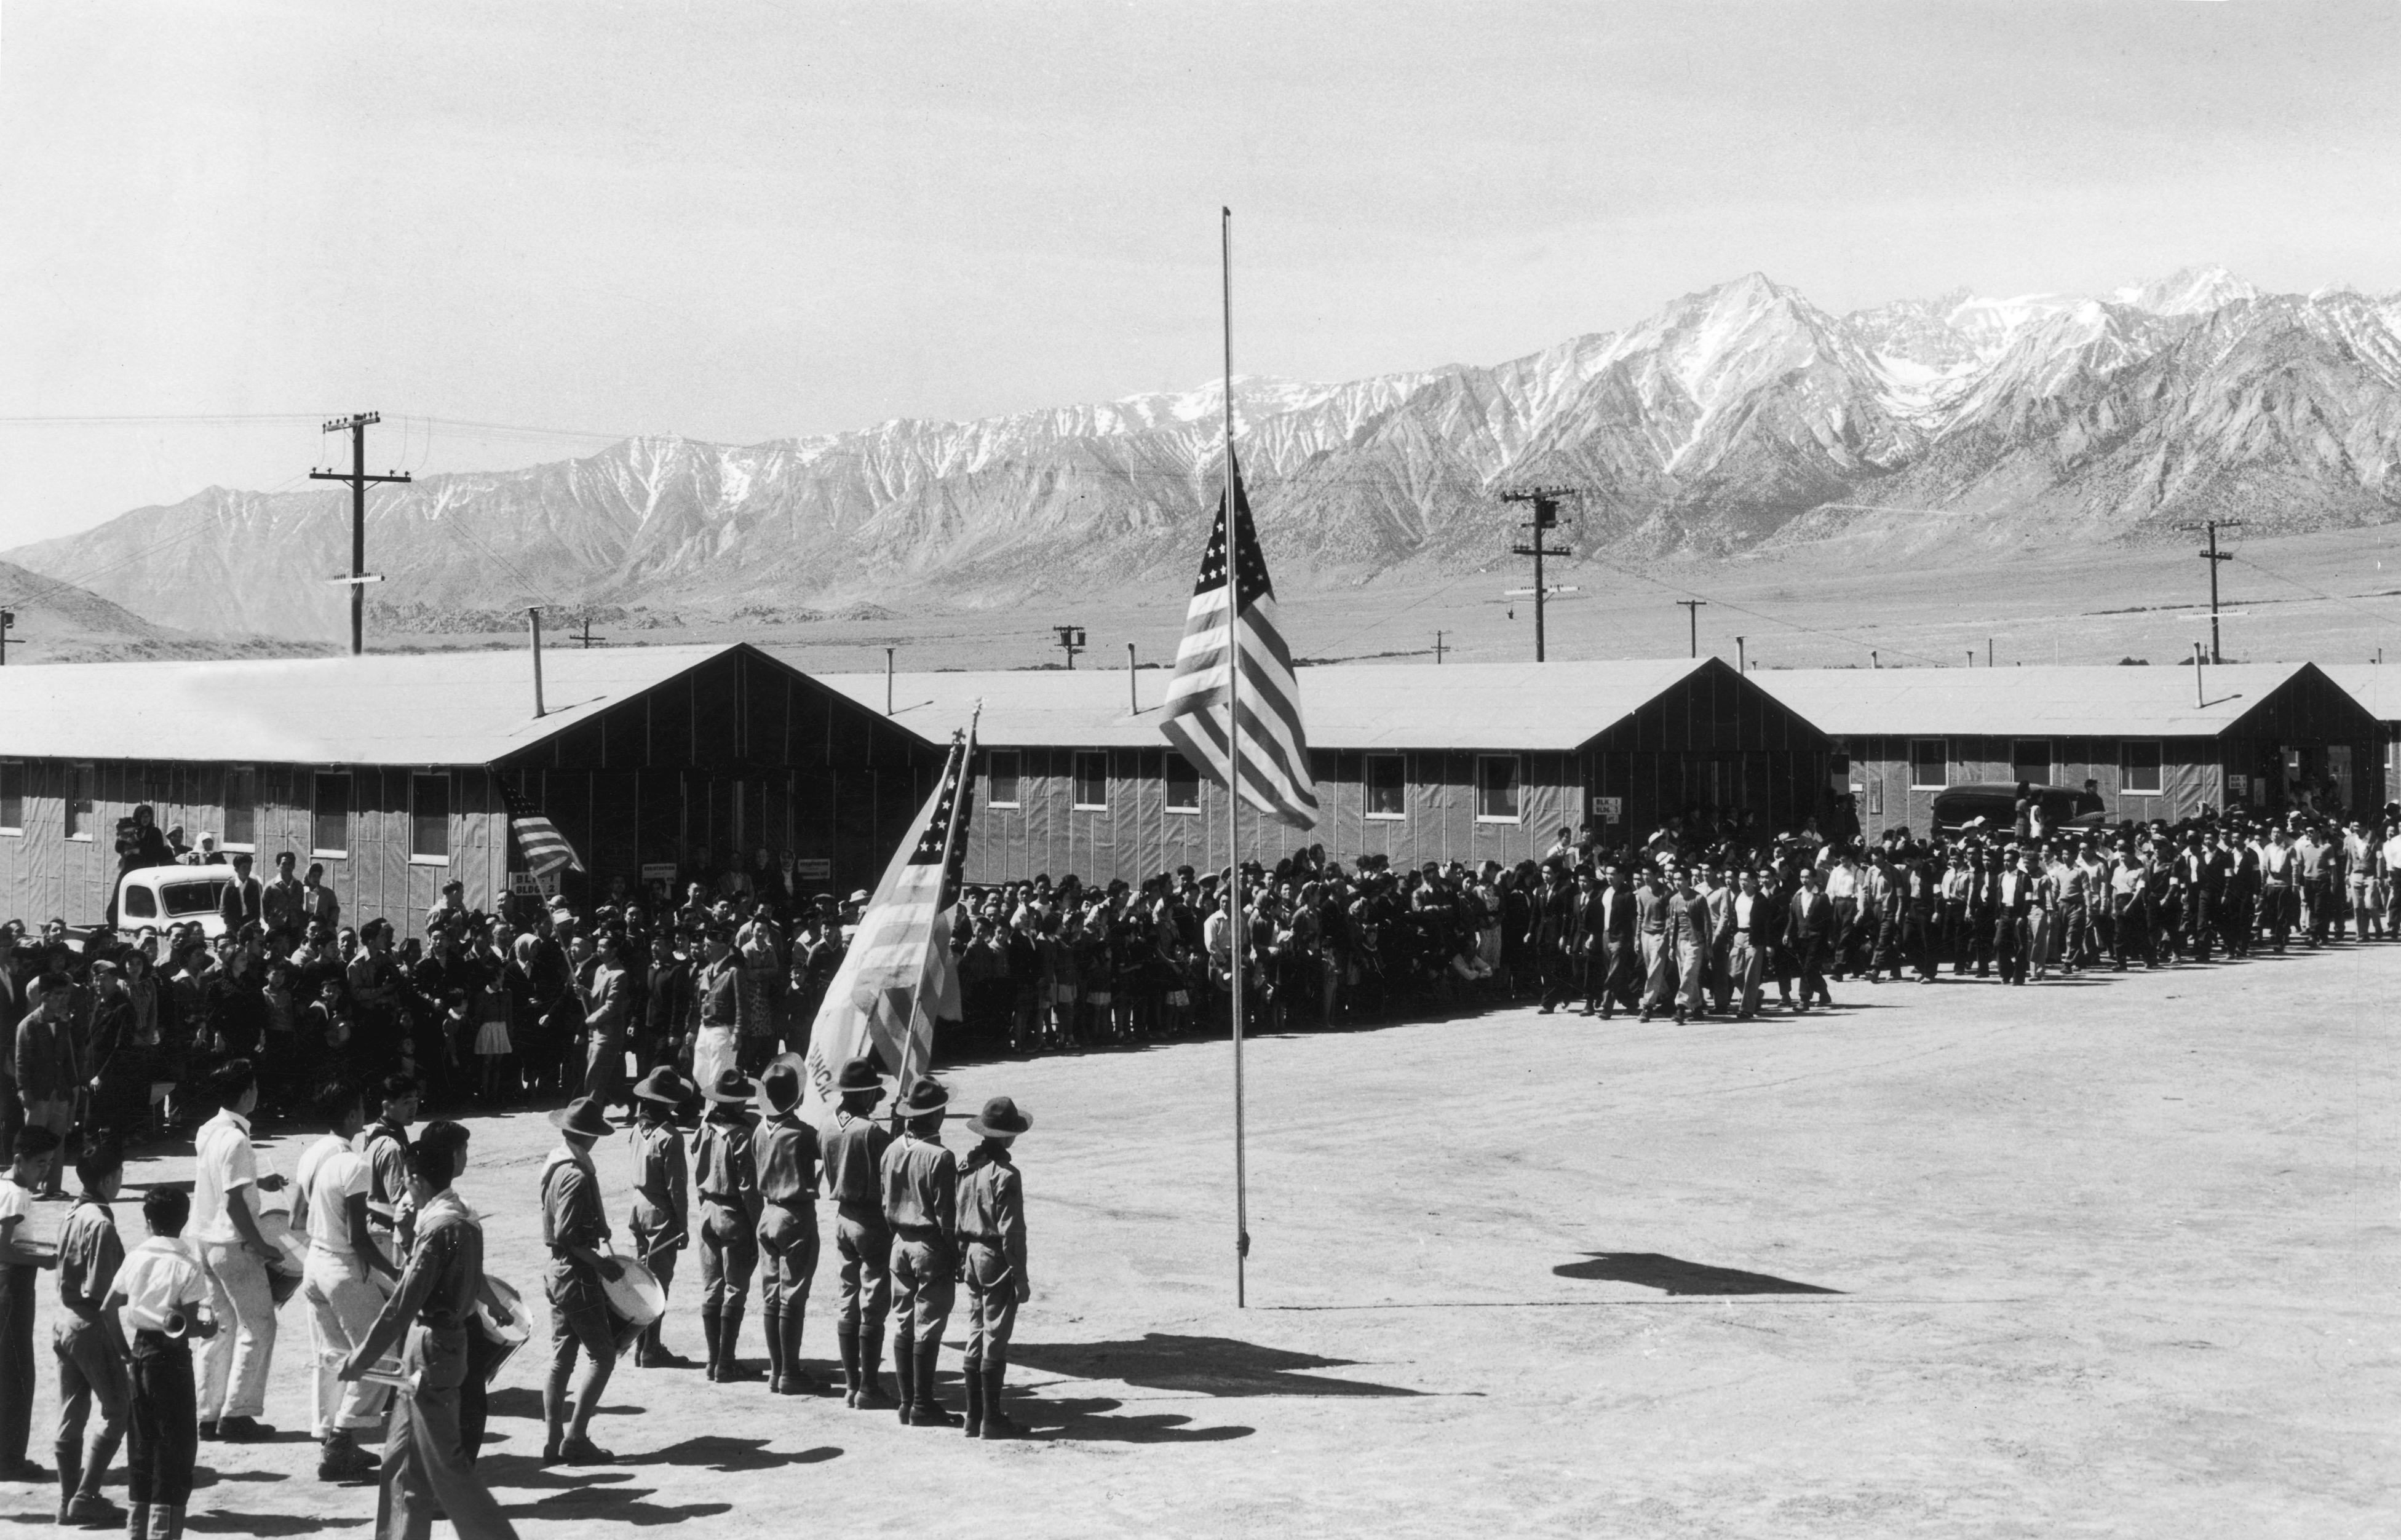 A Brief History Of Us Concentration Camps